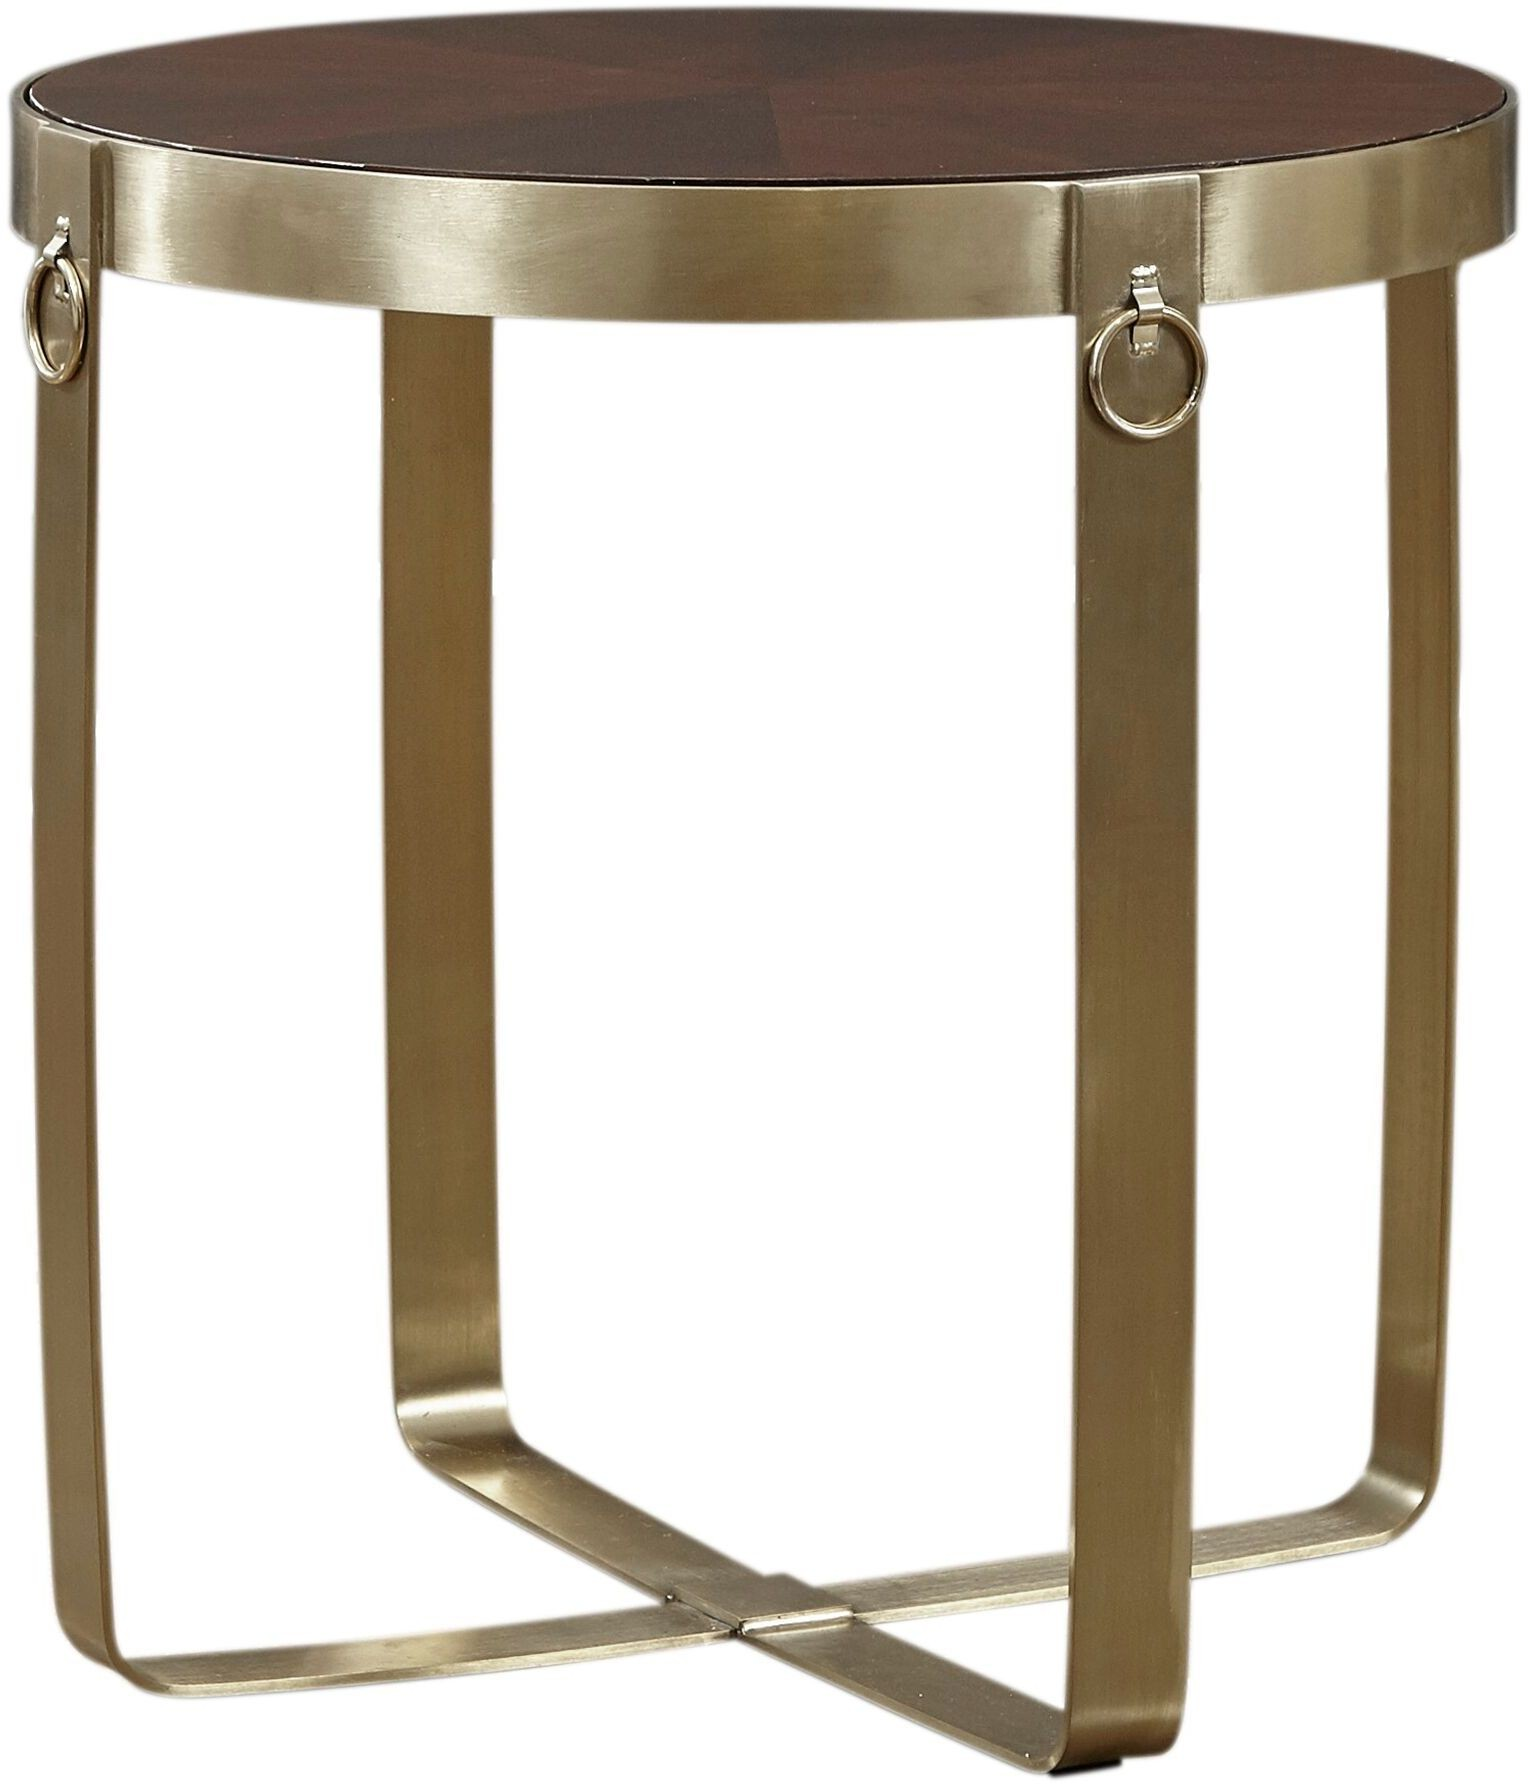 Options gold round end table from lazzaro coleman furniture for Table options